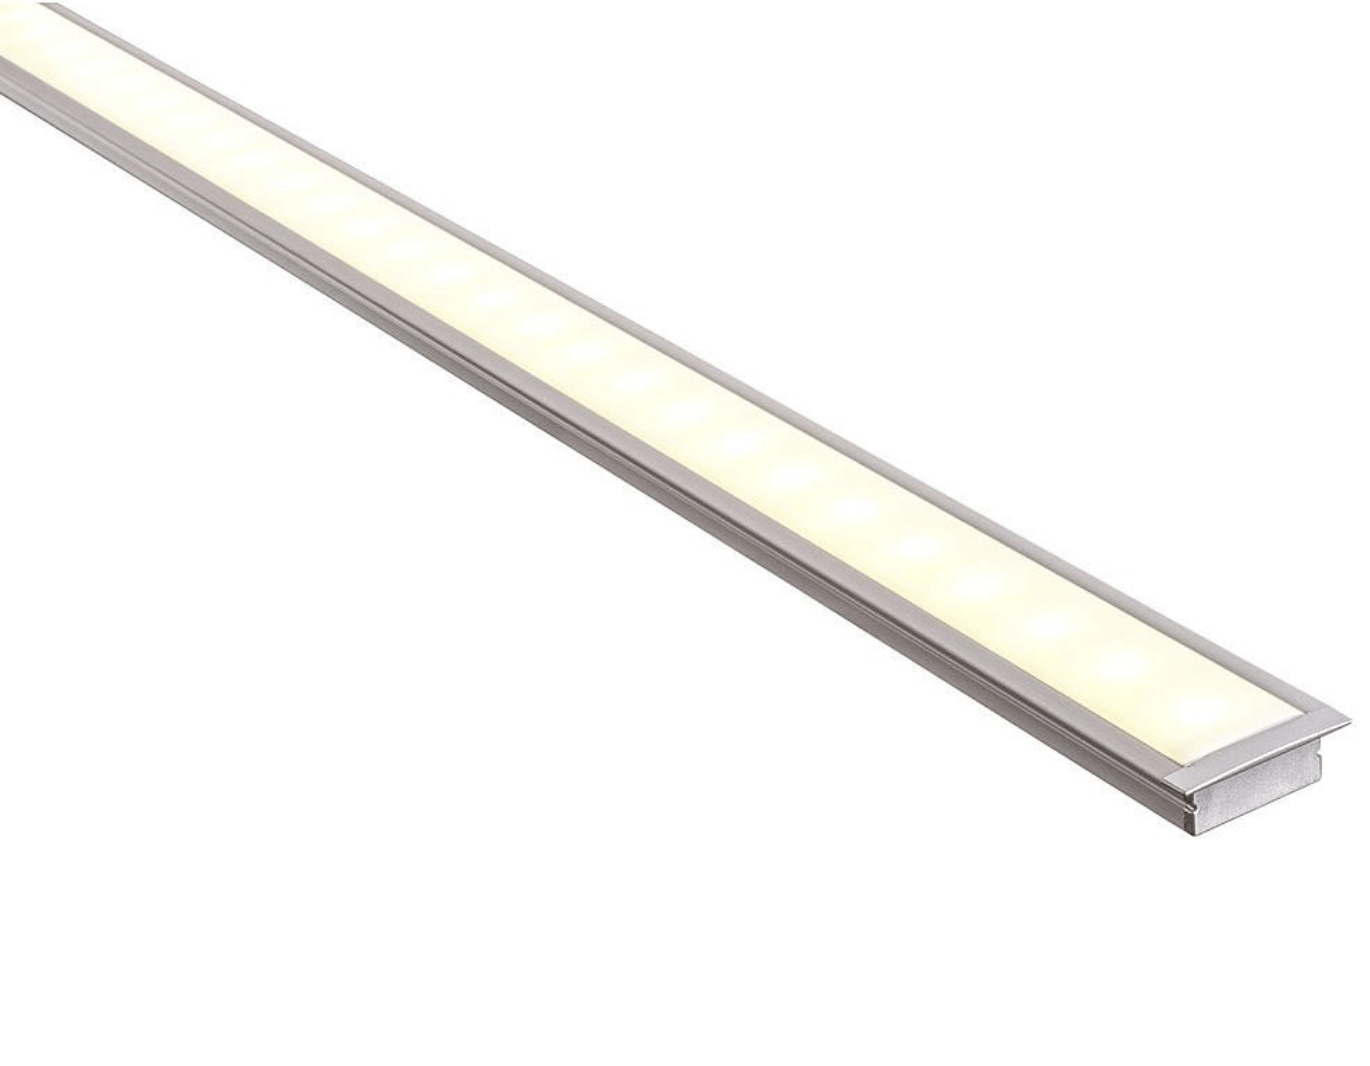 Profiles Recessed Profile - Shallow Square Winged - HV9695-2810